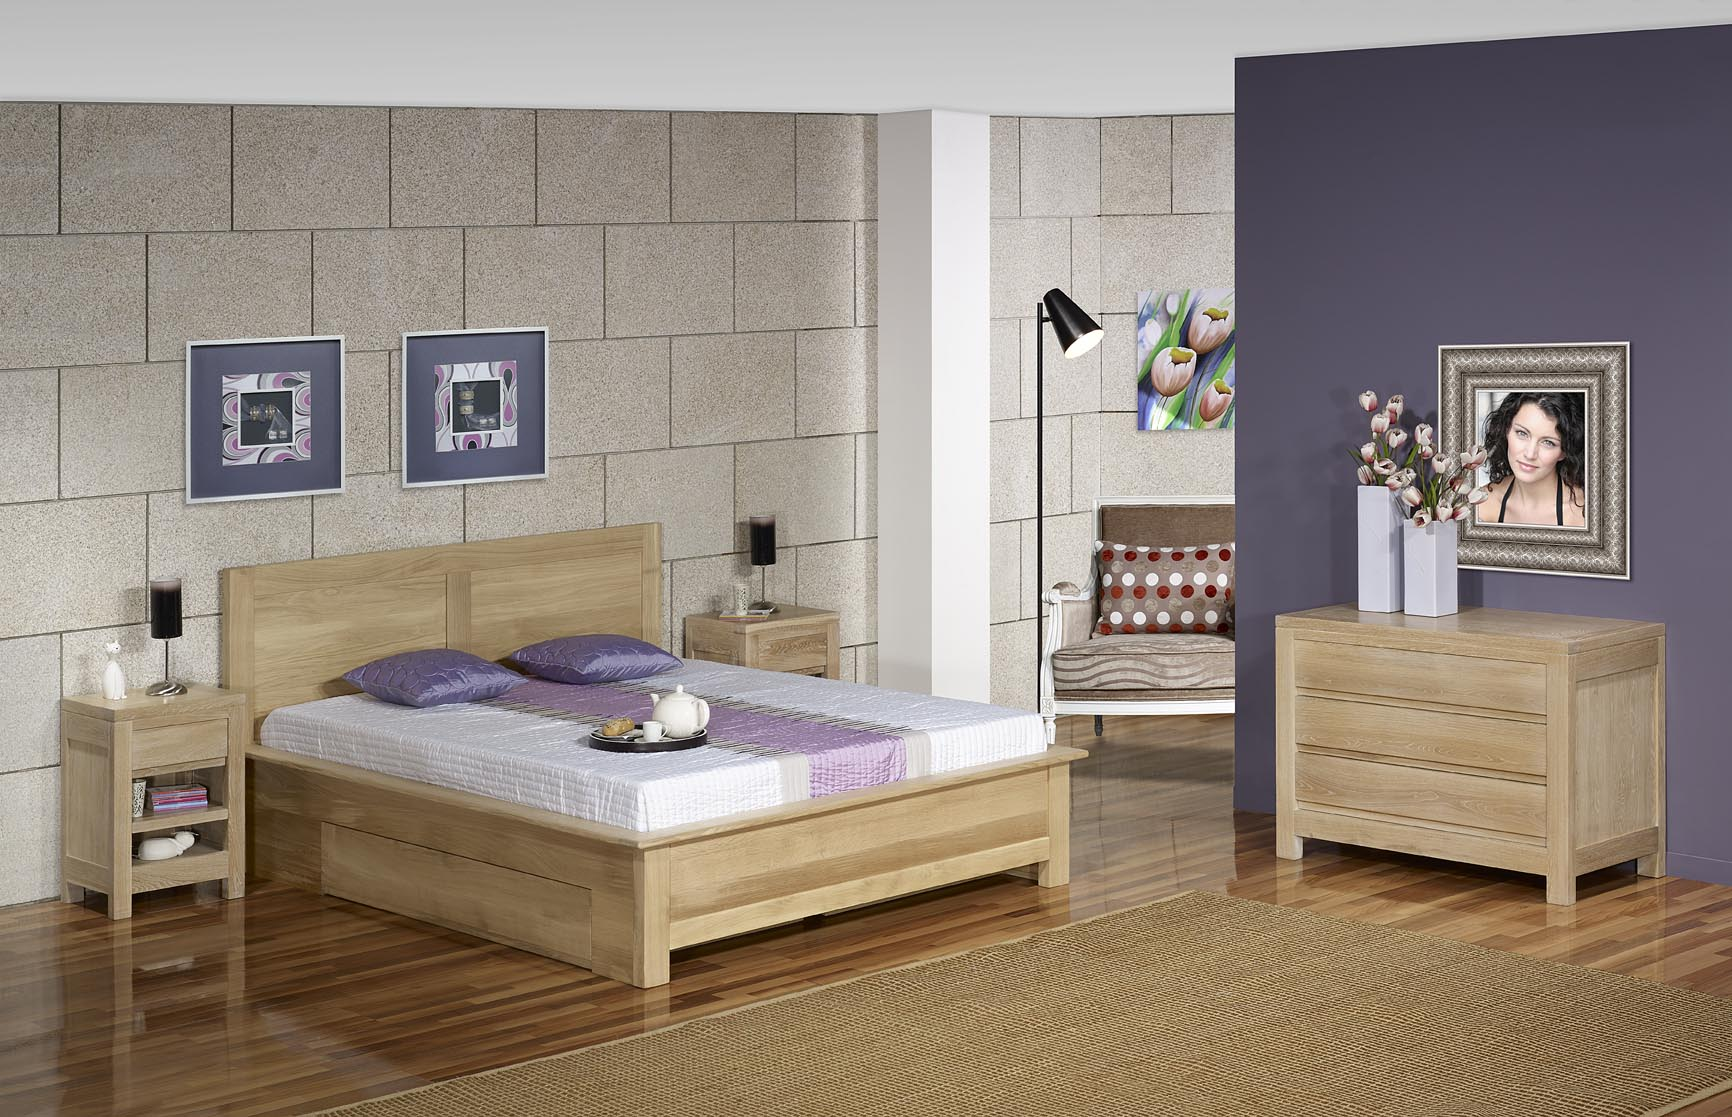 lit collection nature 160 200 en ch ne massif avec tiroirs finition ch ne bross meuble en. Black Bedroom Furniture Sets. Home Design Ideas